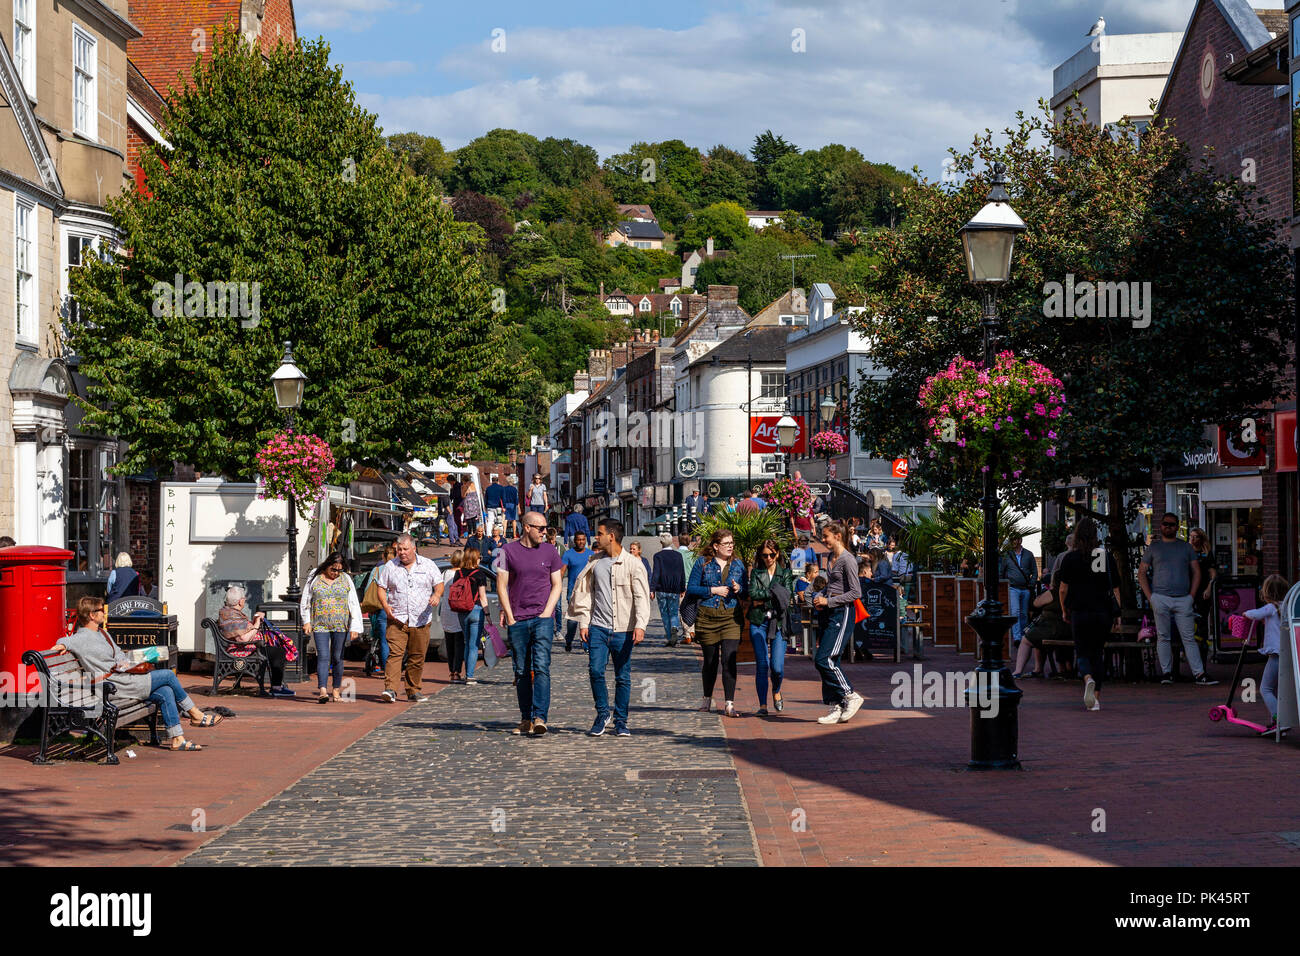 Cliffe High Street, Lewes, East Sussex, UK - Stock Image